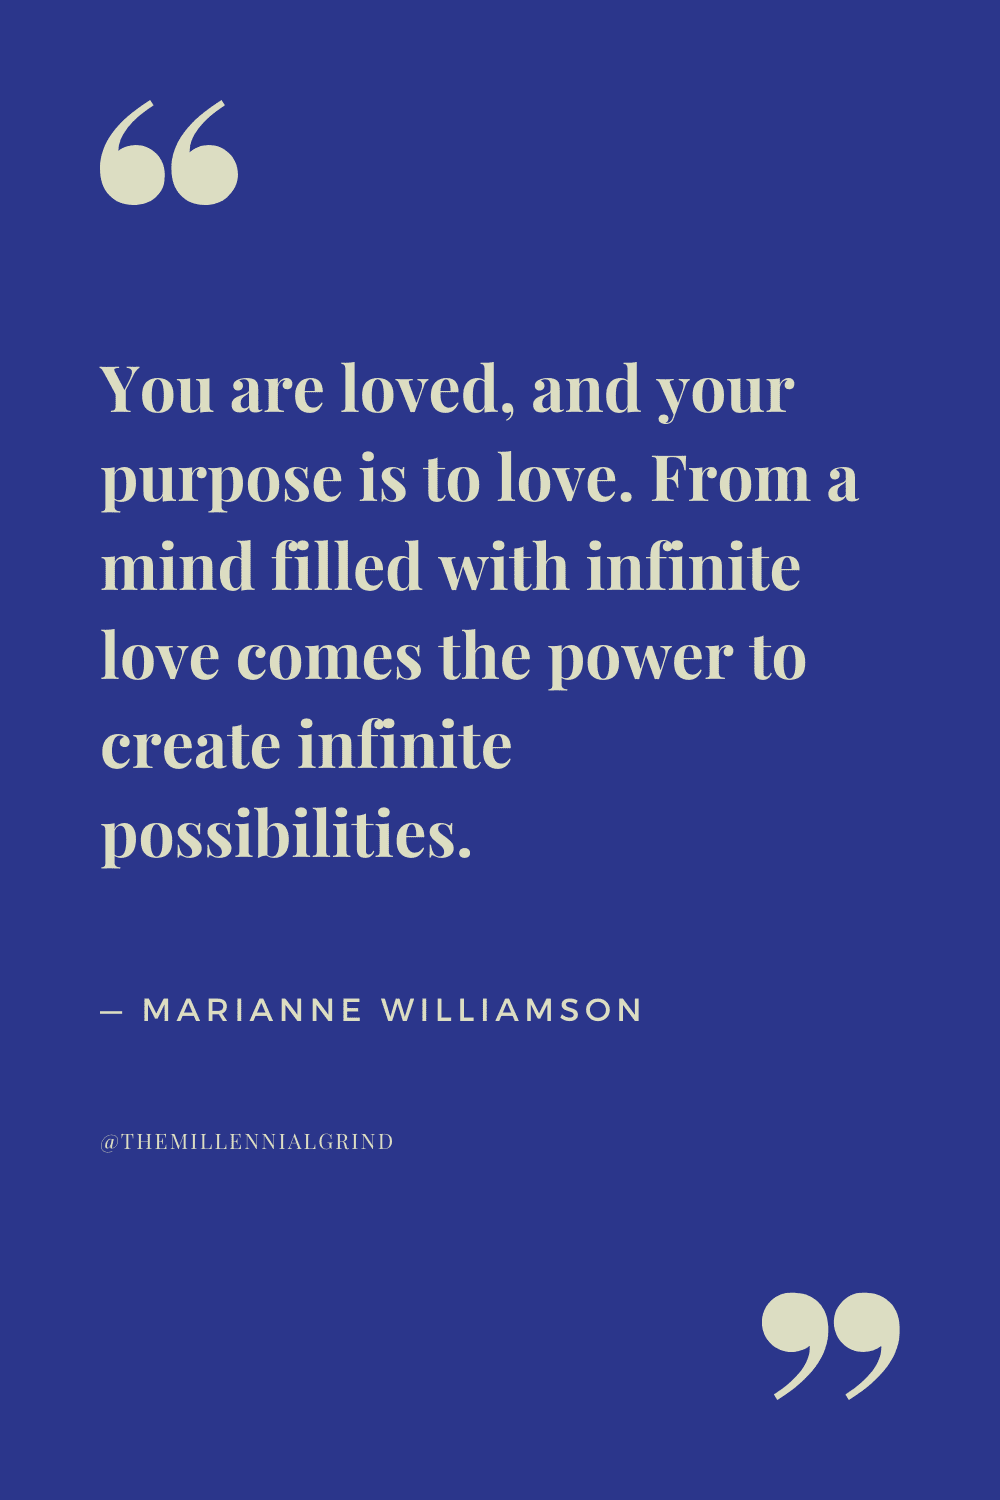 Quotes from The Law of Divine Compensation by Marianne Williamson